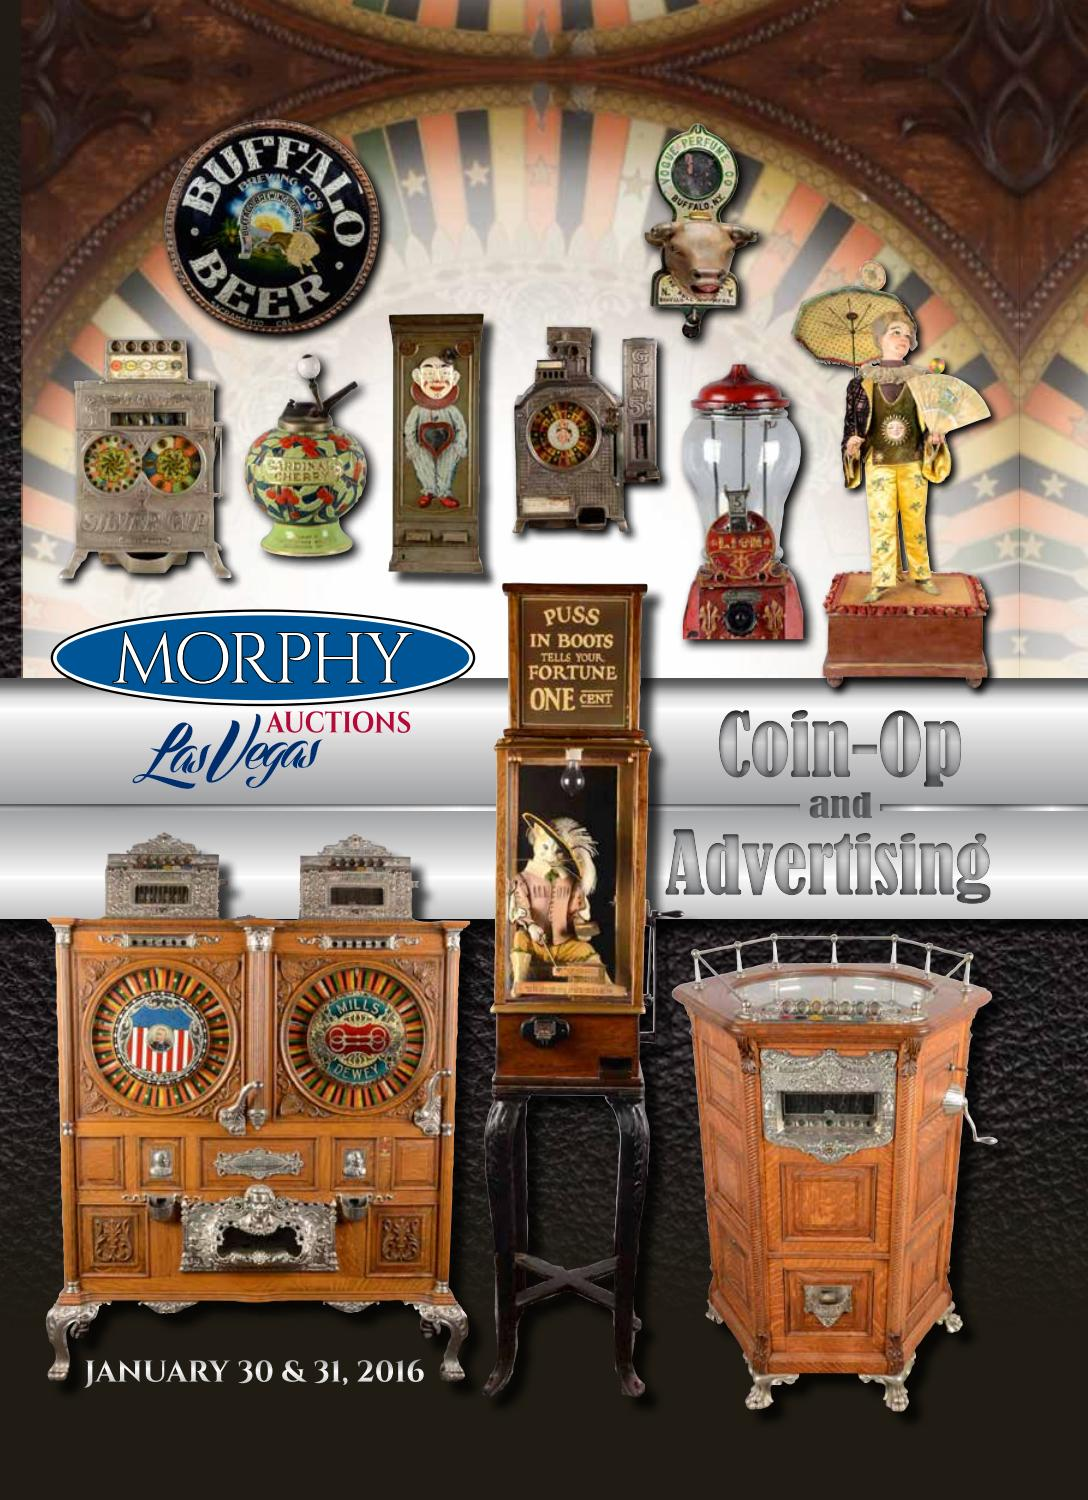 2016 January 30-31 Coin-Op & Advertising by Morphy Auctions